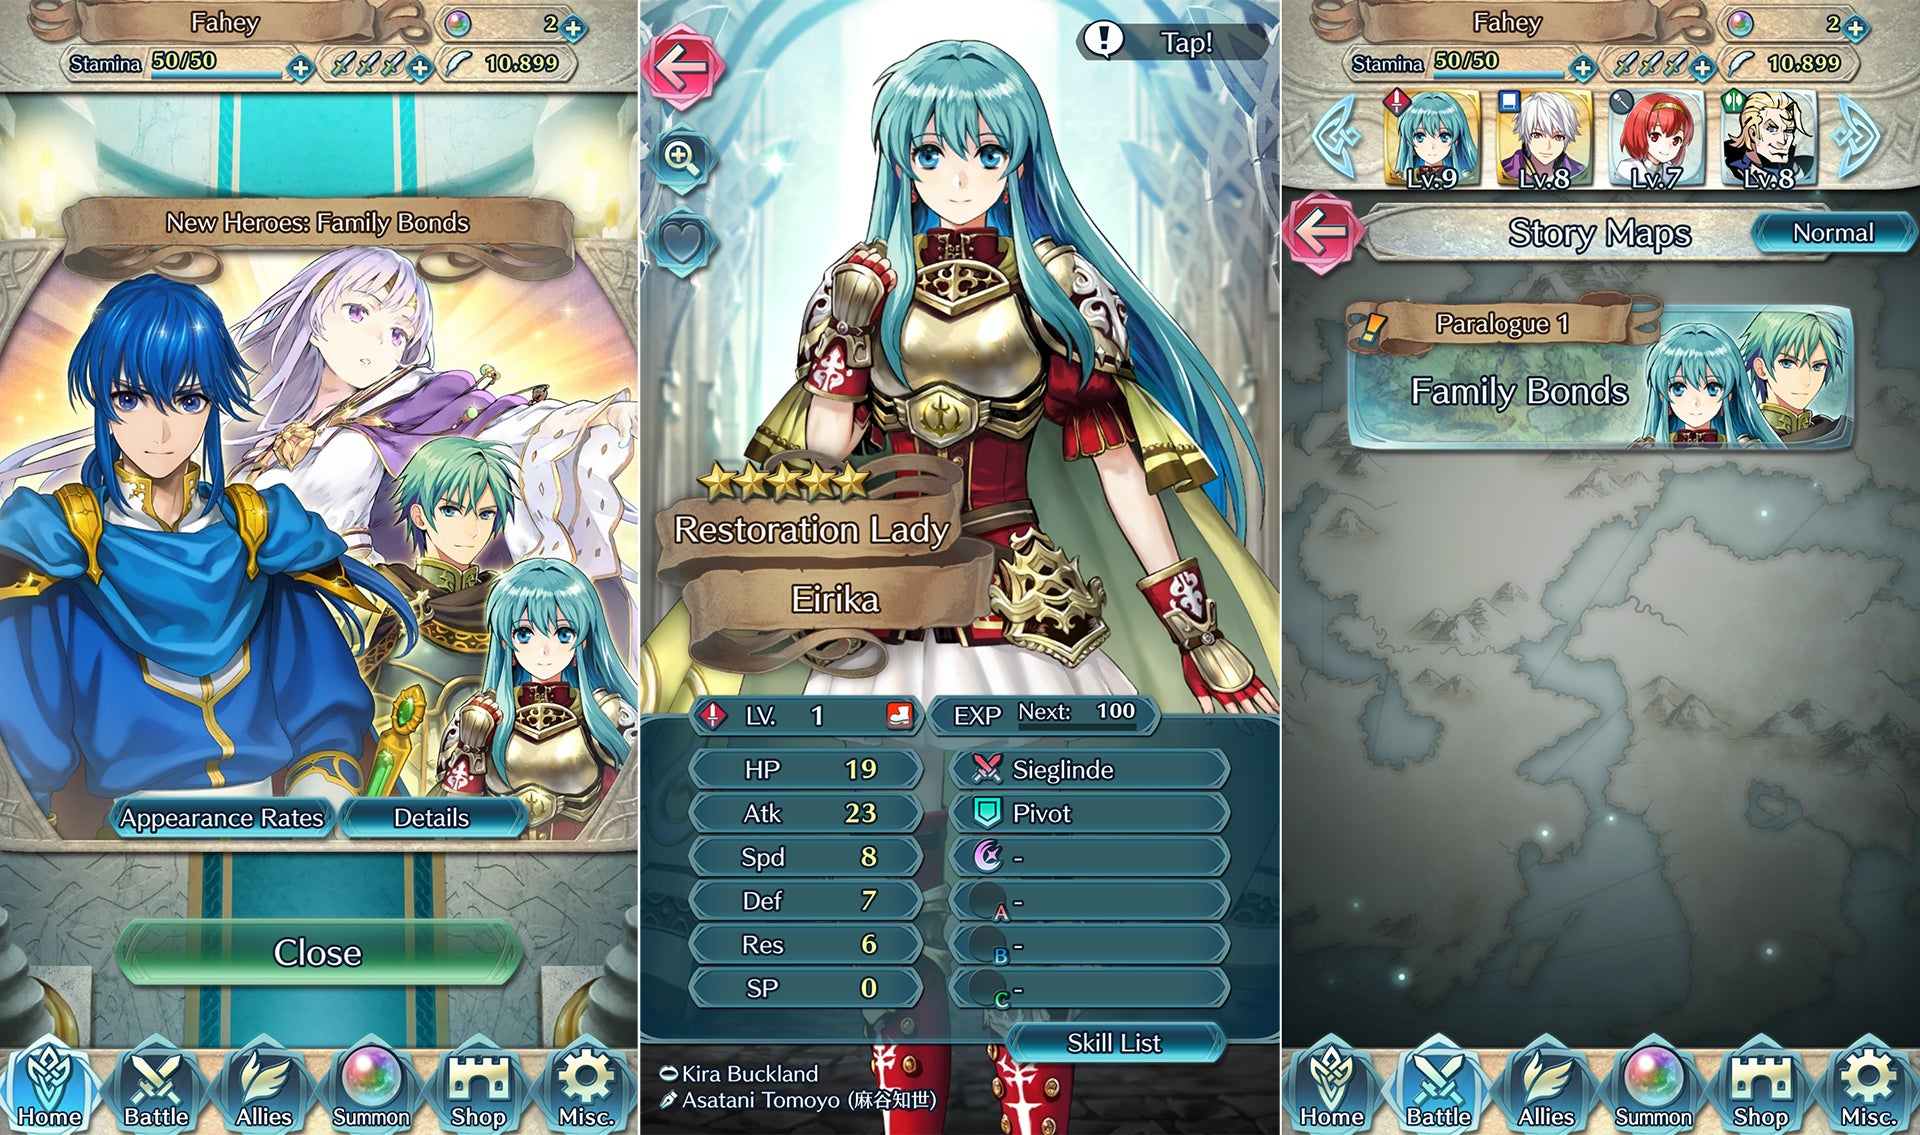 First Big Fire Emblem Heroes Update Brings New Characters And Quests